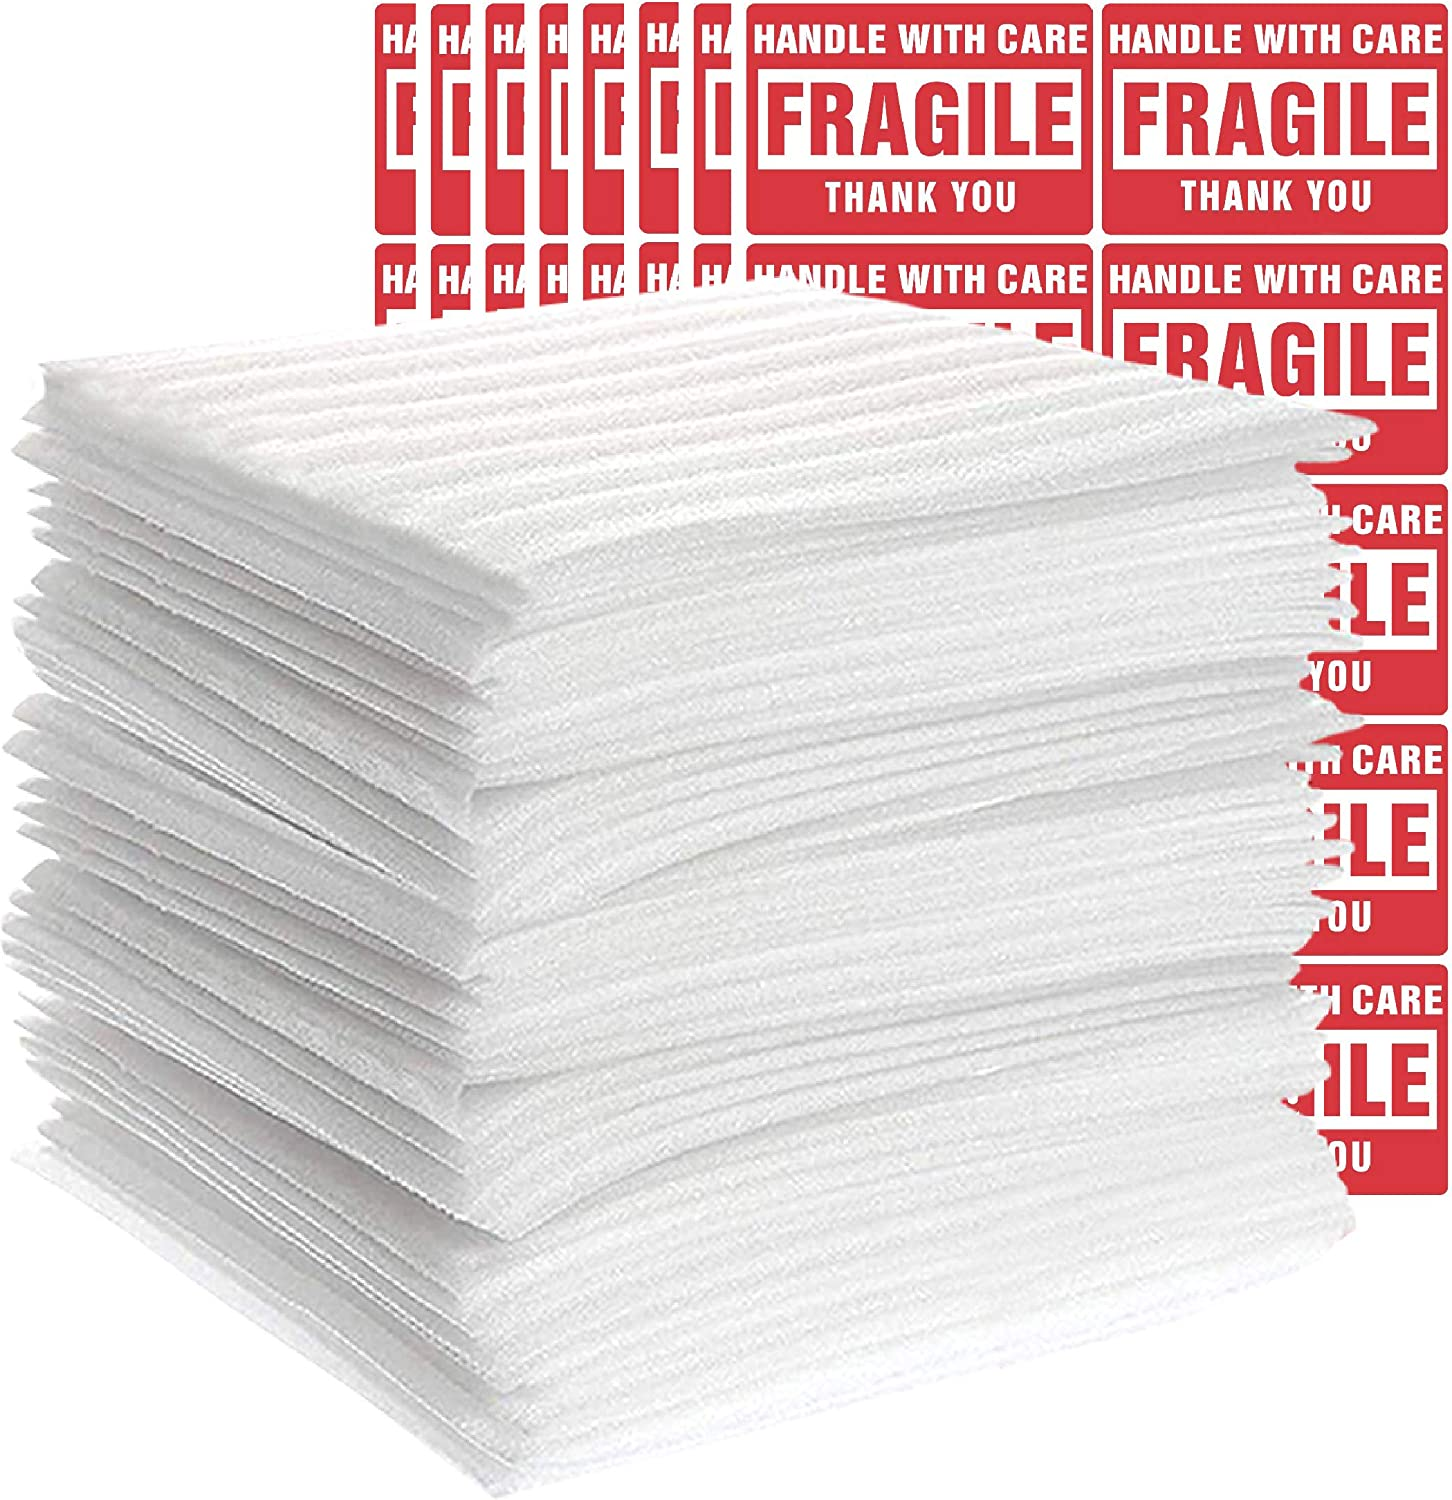 TeiKis 100-Pack (12 x 12 in) Foam Wrap Sheets for Moving Shipping Packing Supplies with 80 Fragile Labels